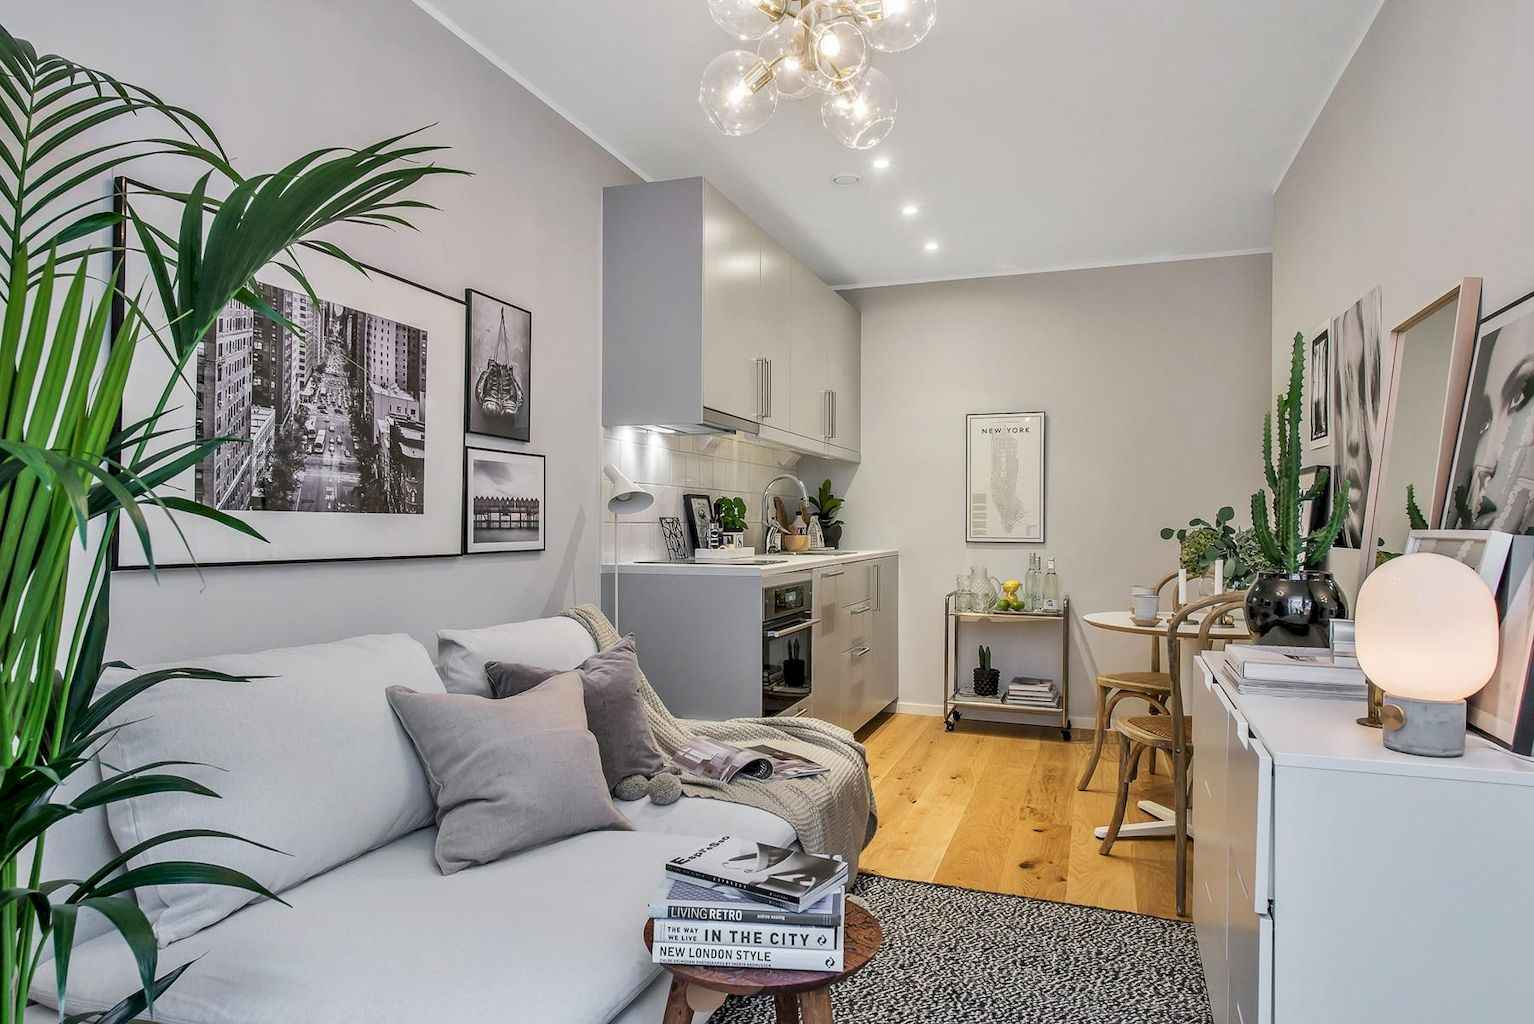 Cool small apartment decorating ideas on a budget (35)